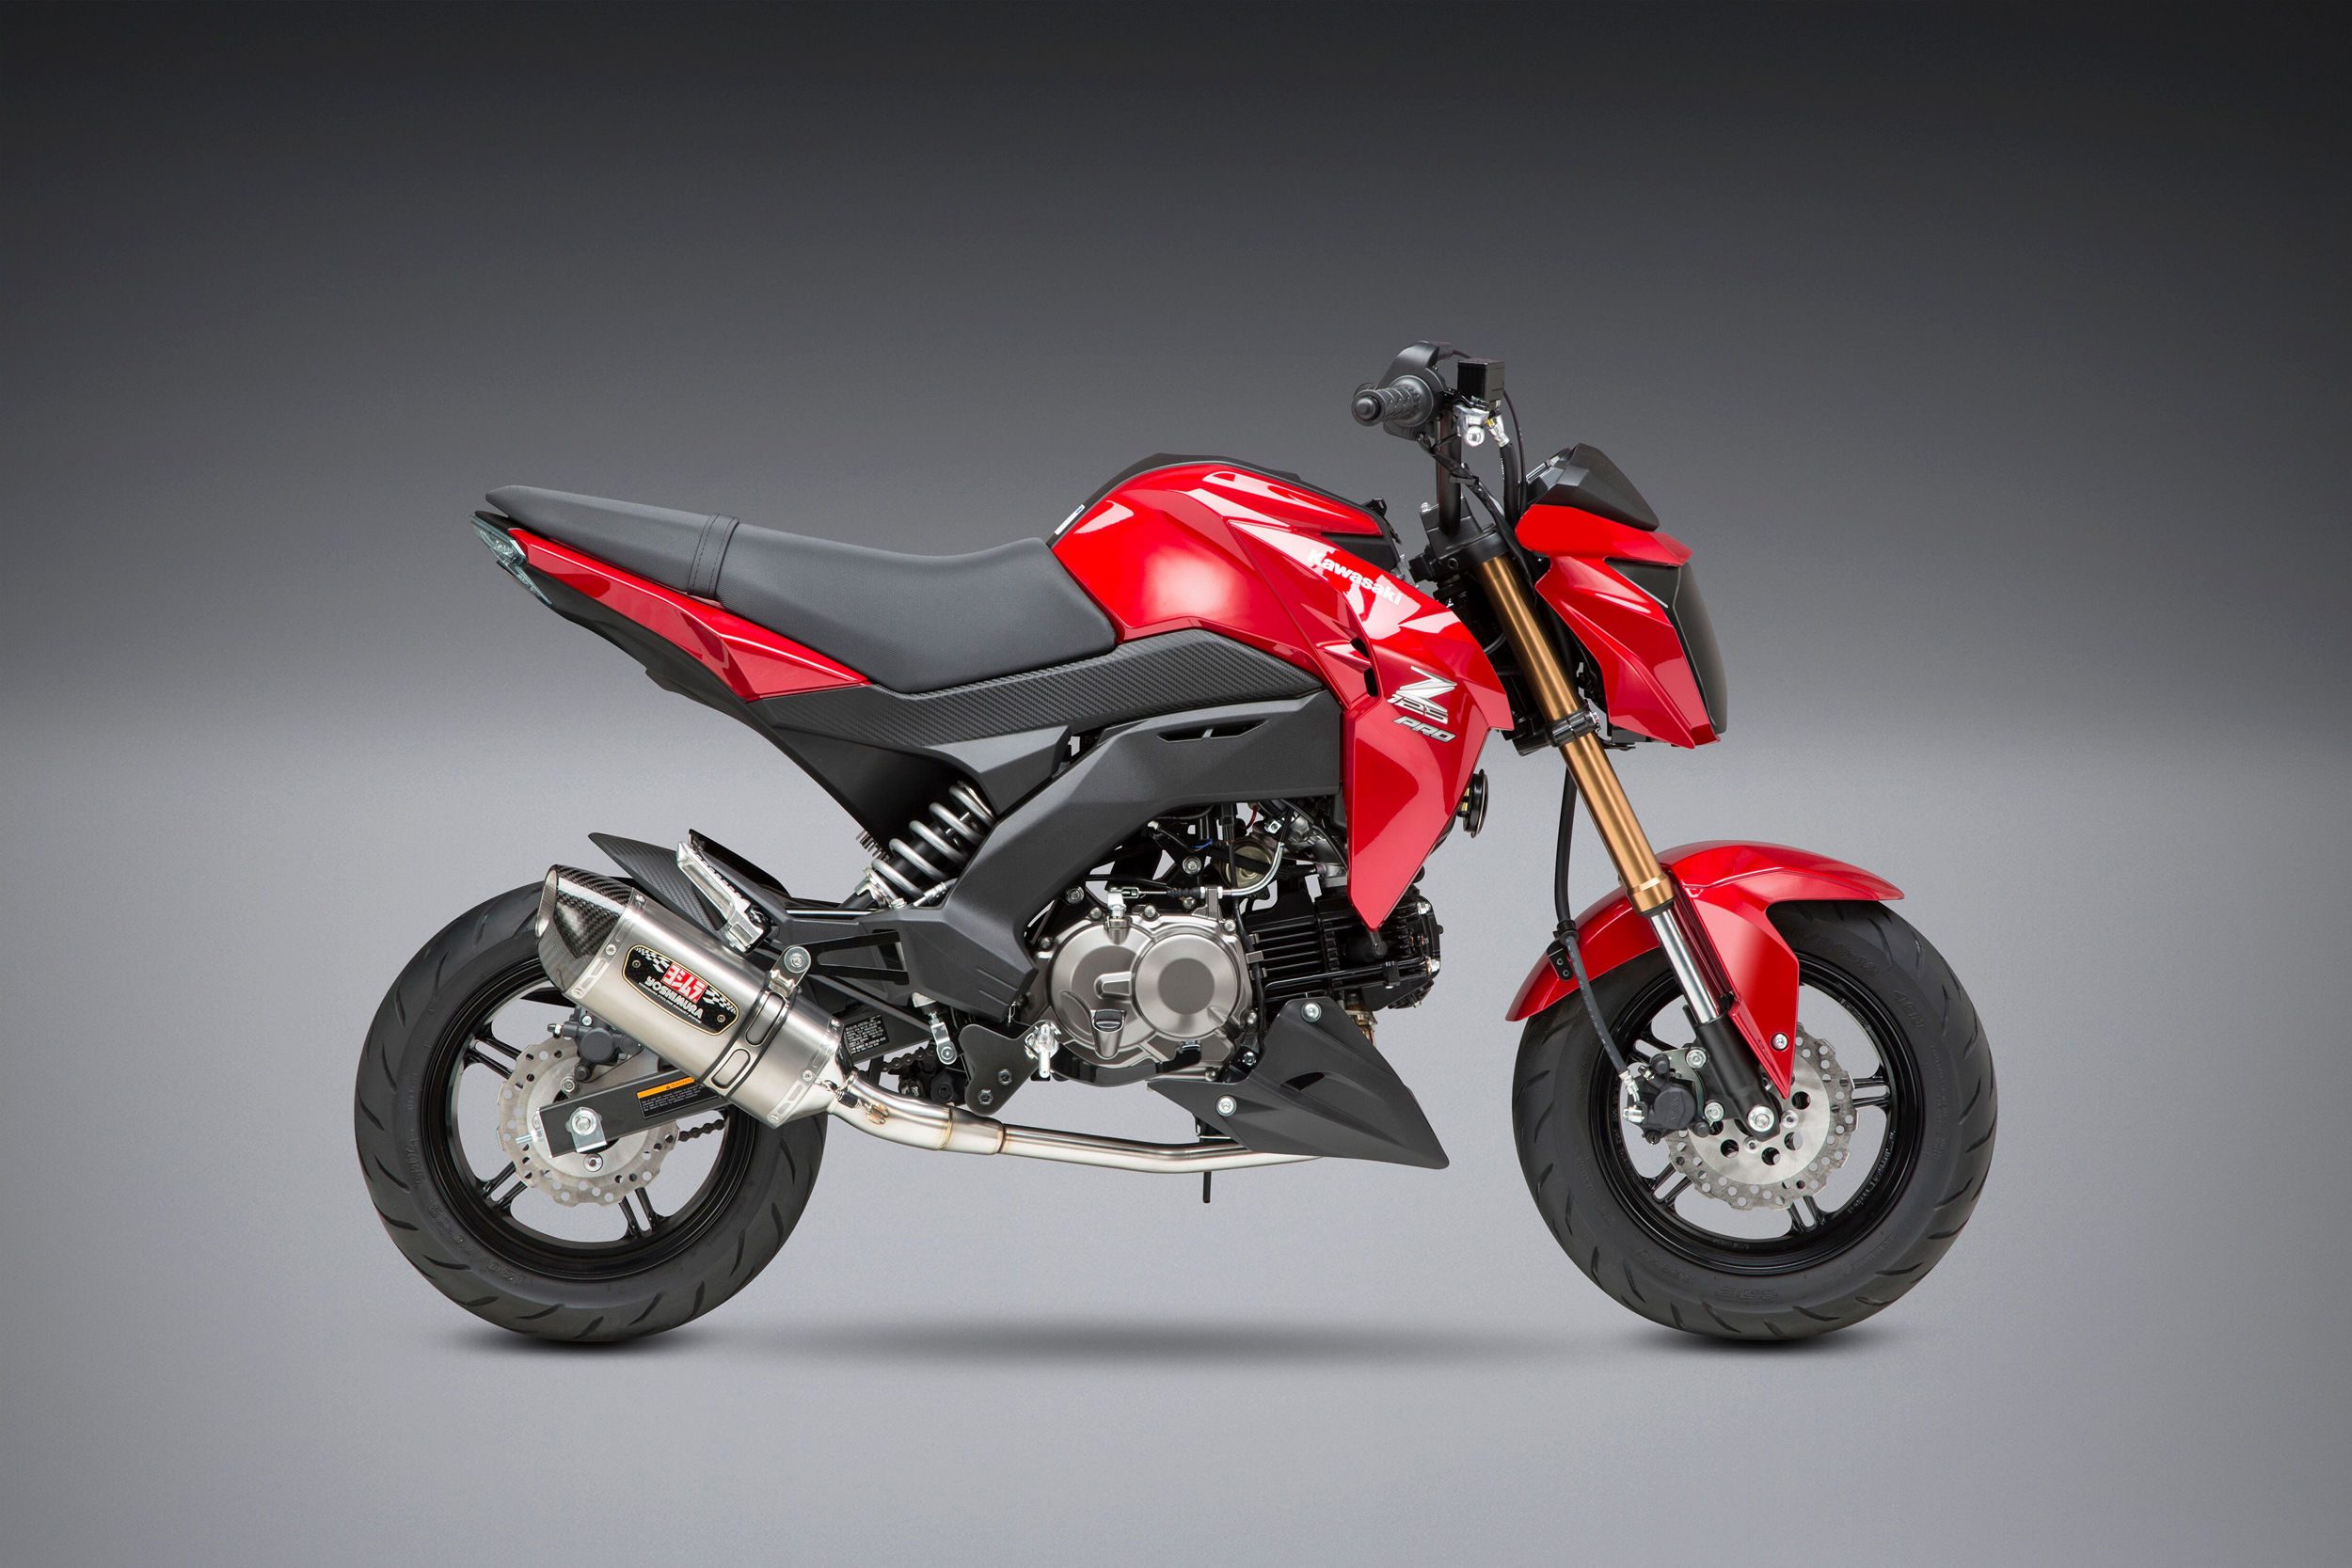 2019 Kawasaki Z125 Pro with Yoshimura R-77 stainless Race Series system